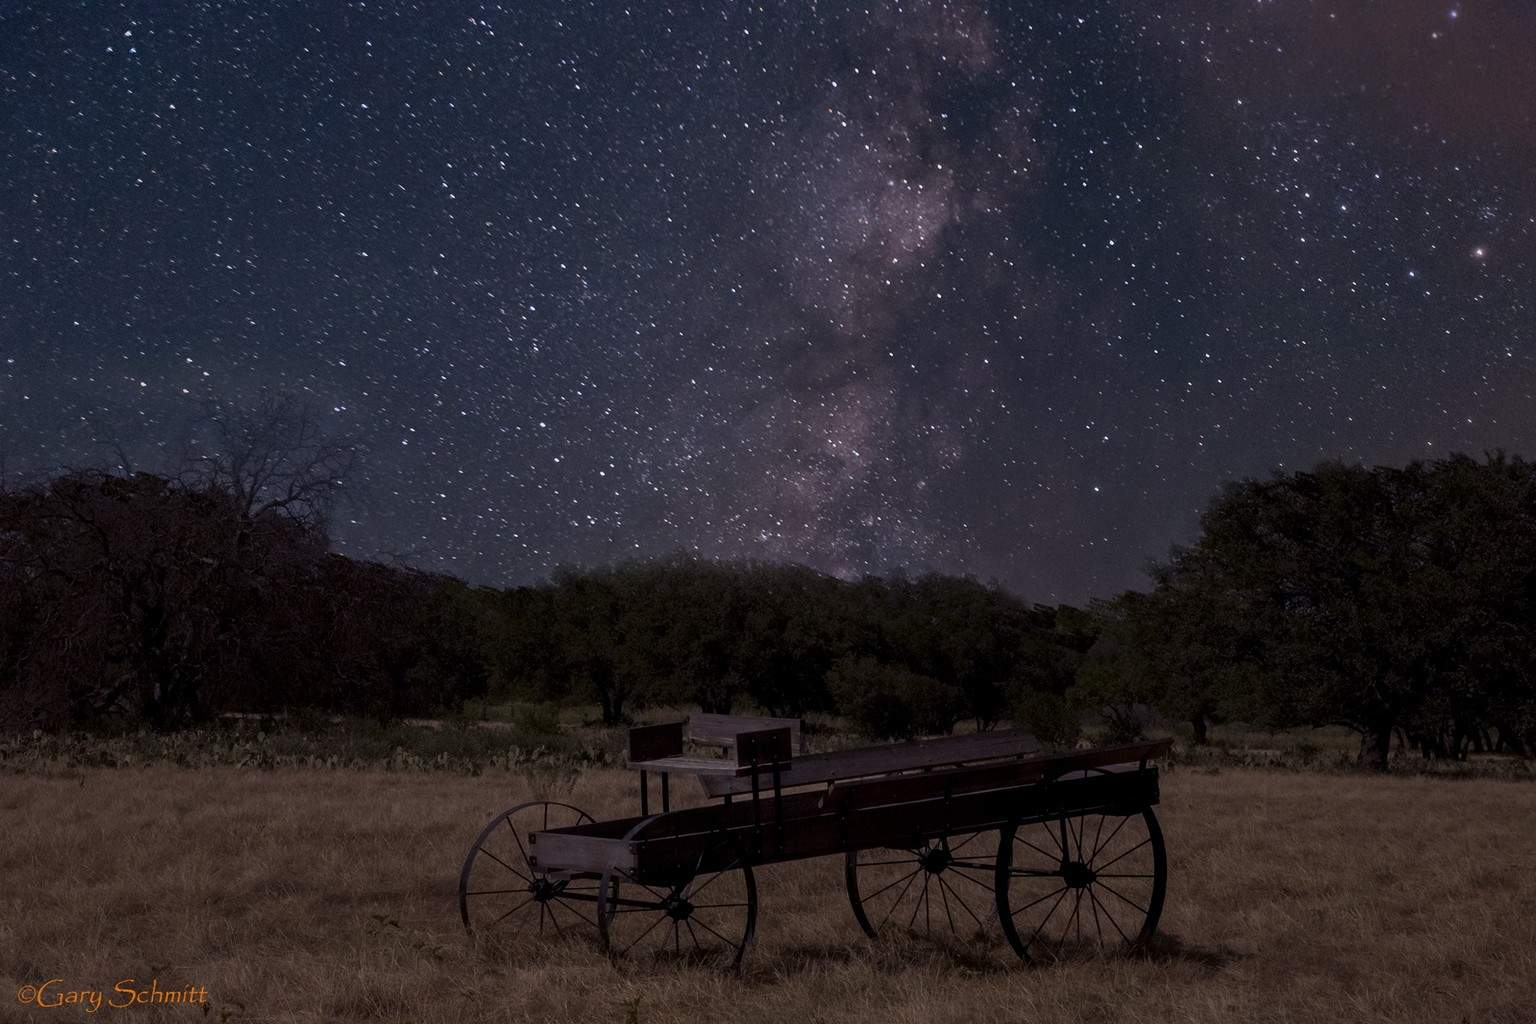 Milky Way shot in Texas last summer.